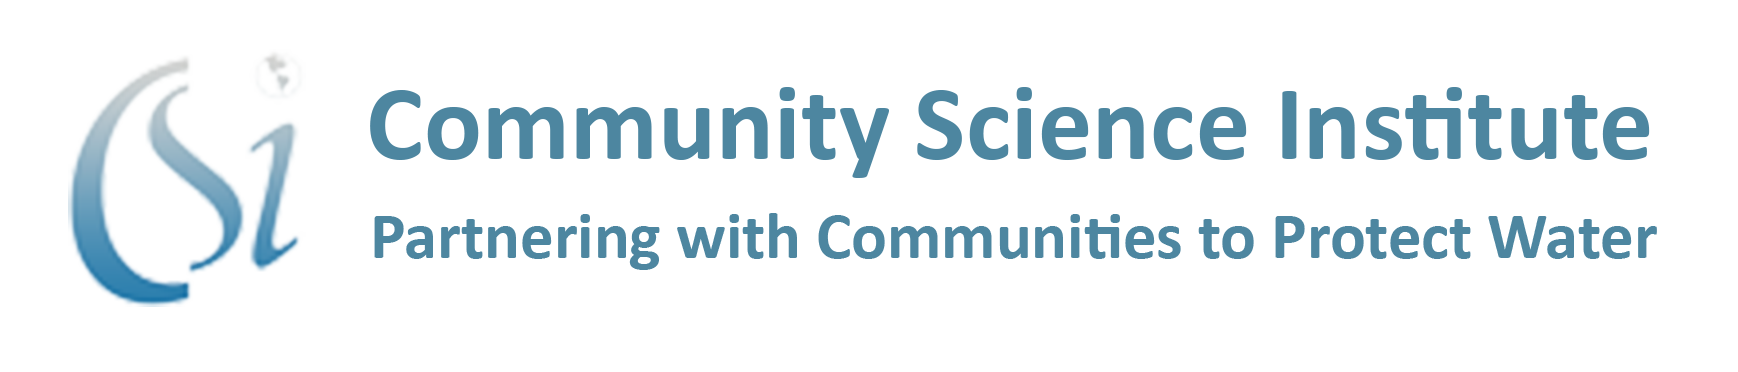 Drinking Water Tests, Fees and FAQs | Community Science